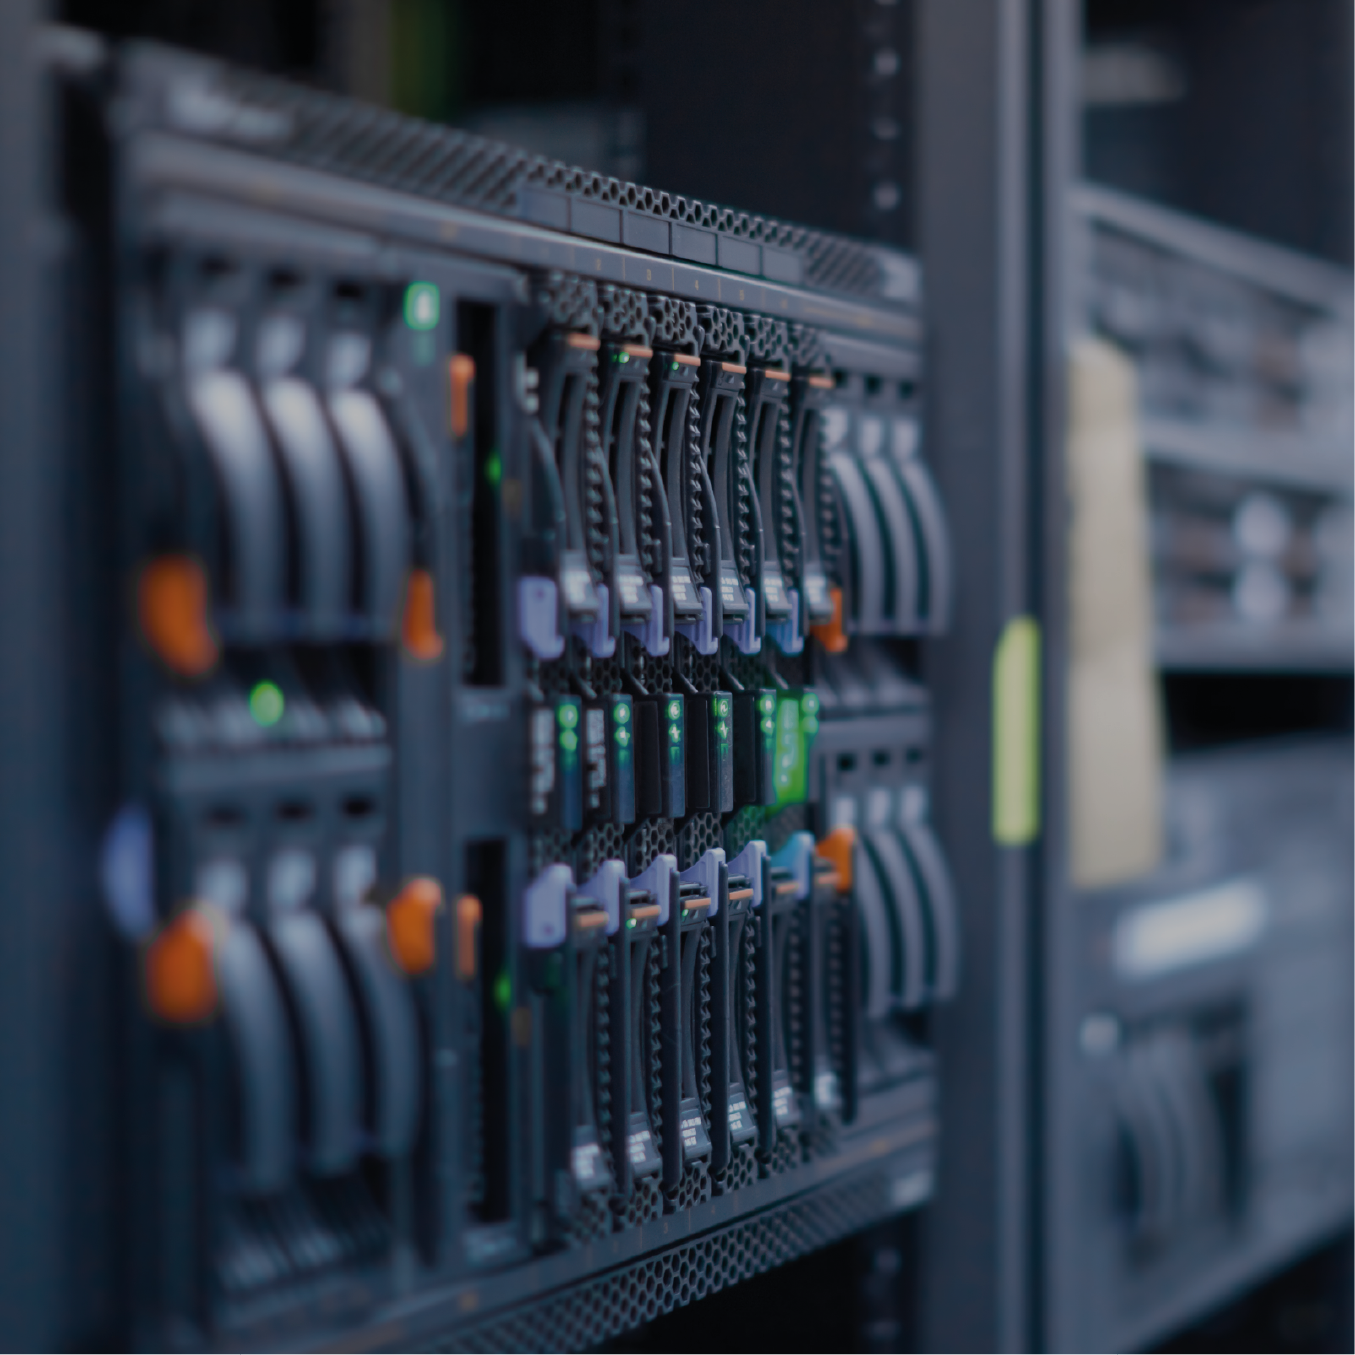 Data centre infrastructure monitoring - End-to-end data centre infrastructure management, monitoring and controlling the power, cooling, security and energy usage of your data centreLEARN MORE...